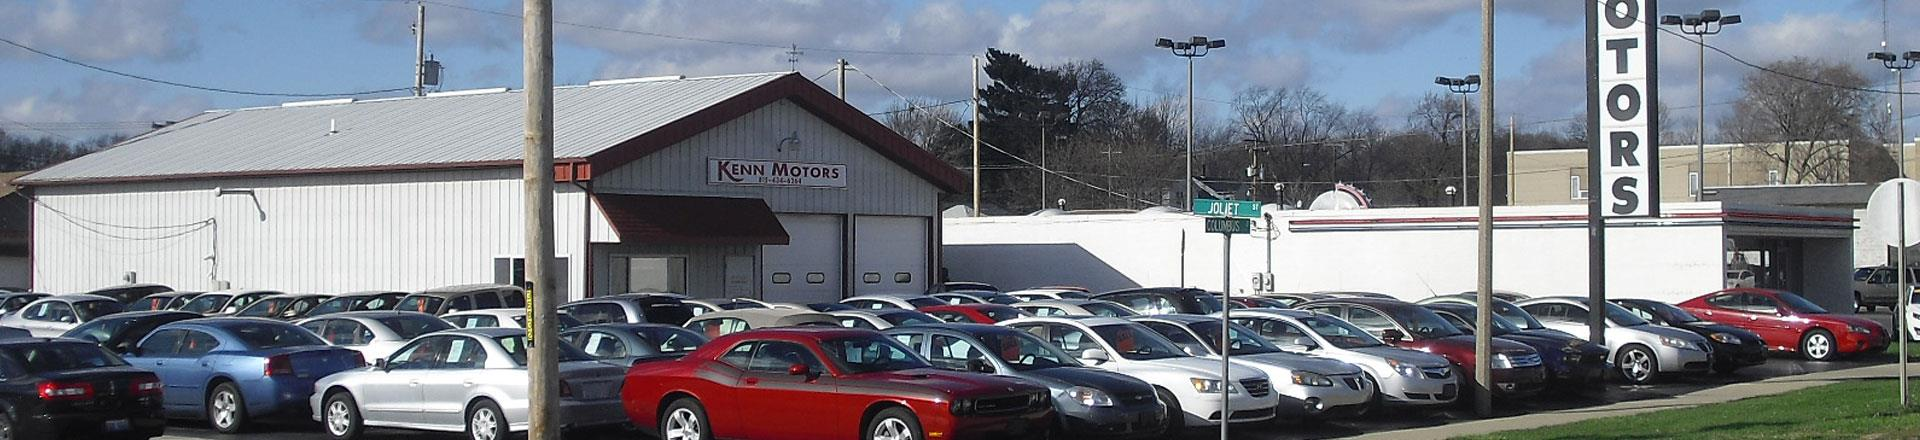 Used Cars Ottawa IL | Used Cars & Trucks IL | Kenn Motors